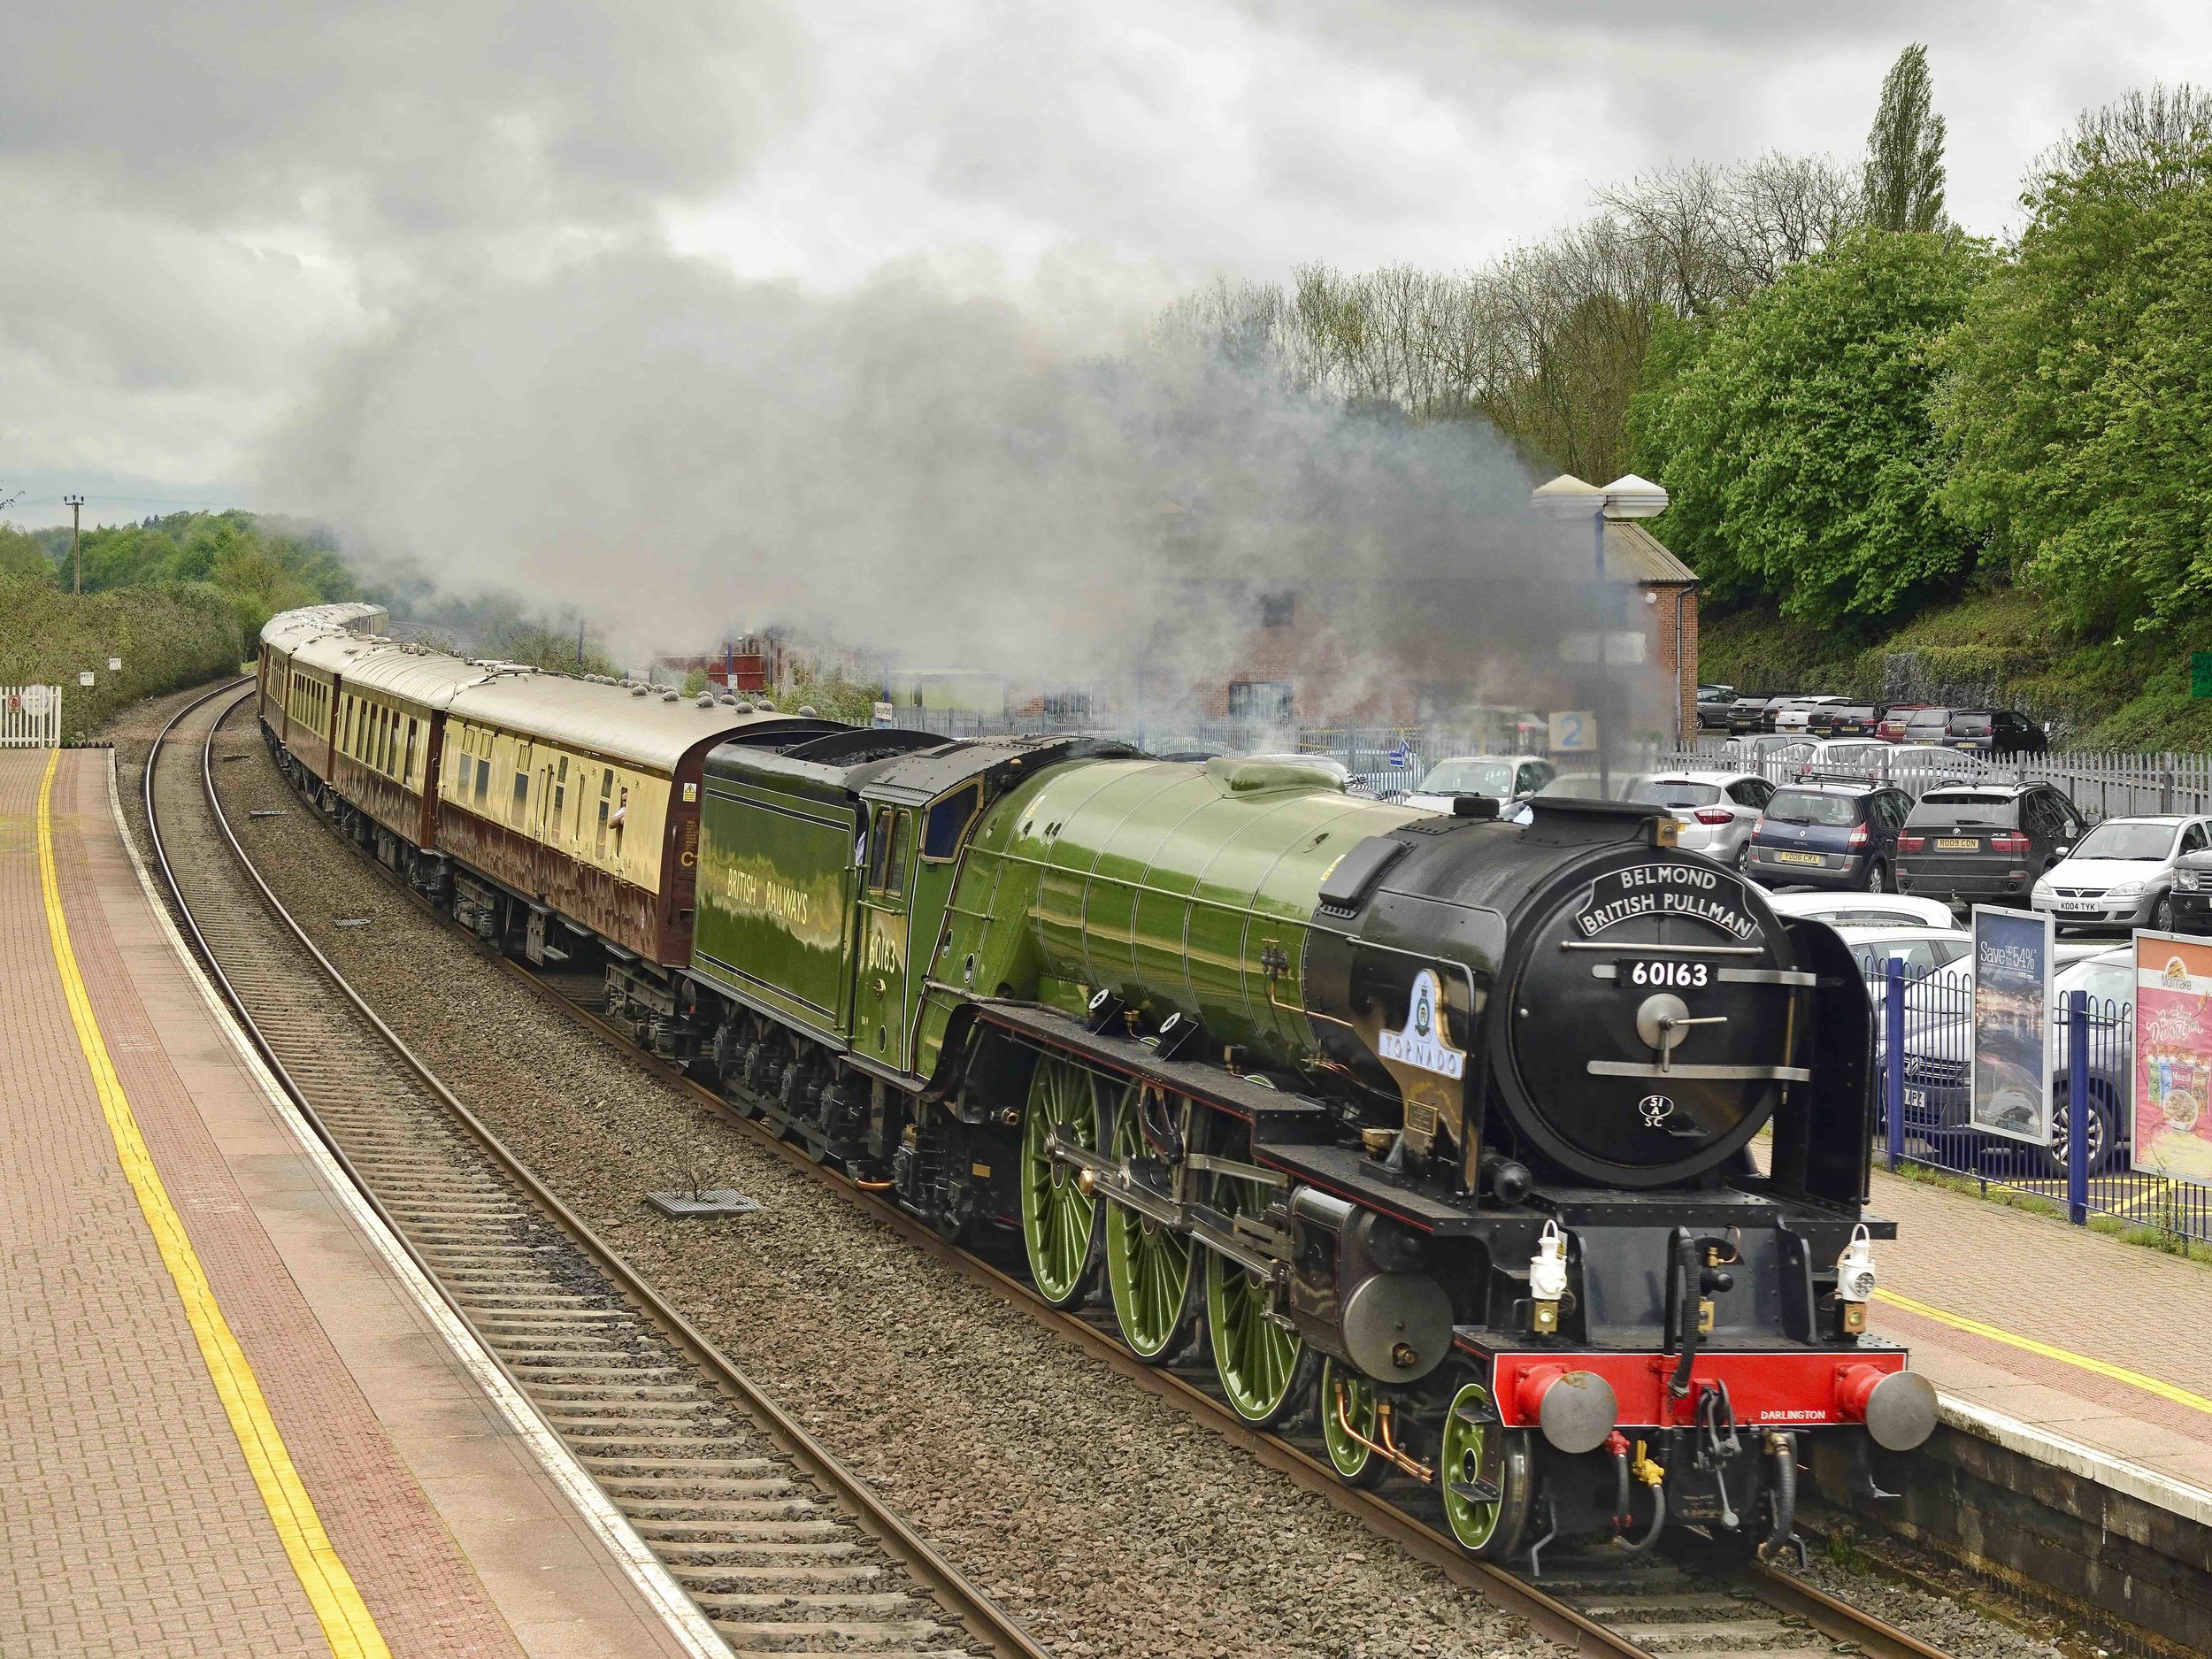 'A1' No. 60163  Tornado , star of the upcoming  Paddington 2 , races through Hungerford with the 'Belmond British Pullman' on May 11. TONY BARTLETT/A1SLT